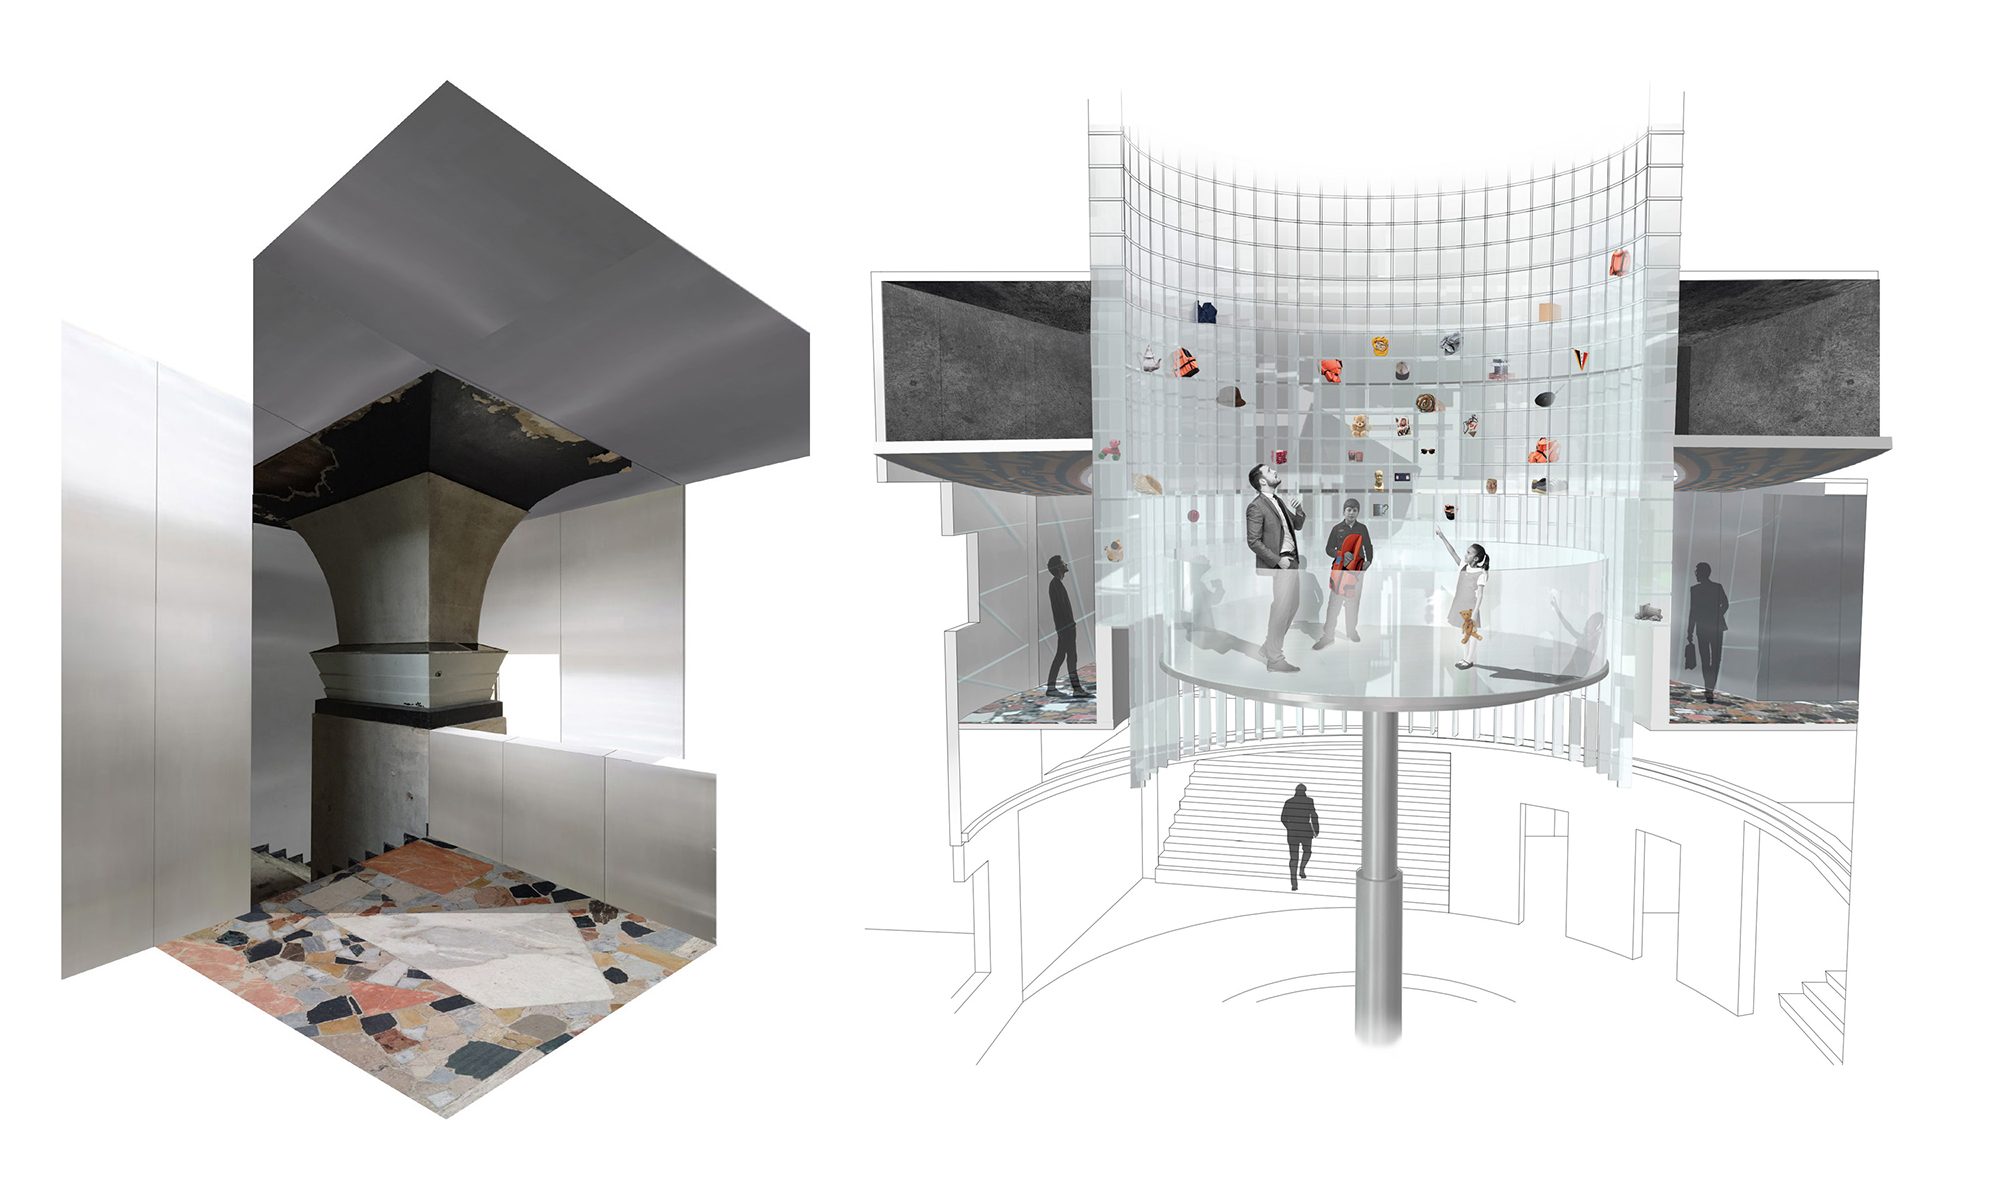 Student work interior design ba hons degree course for - Materials needed for interior design ...